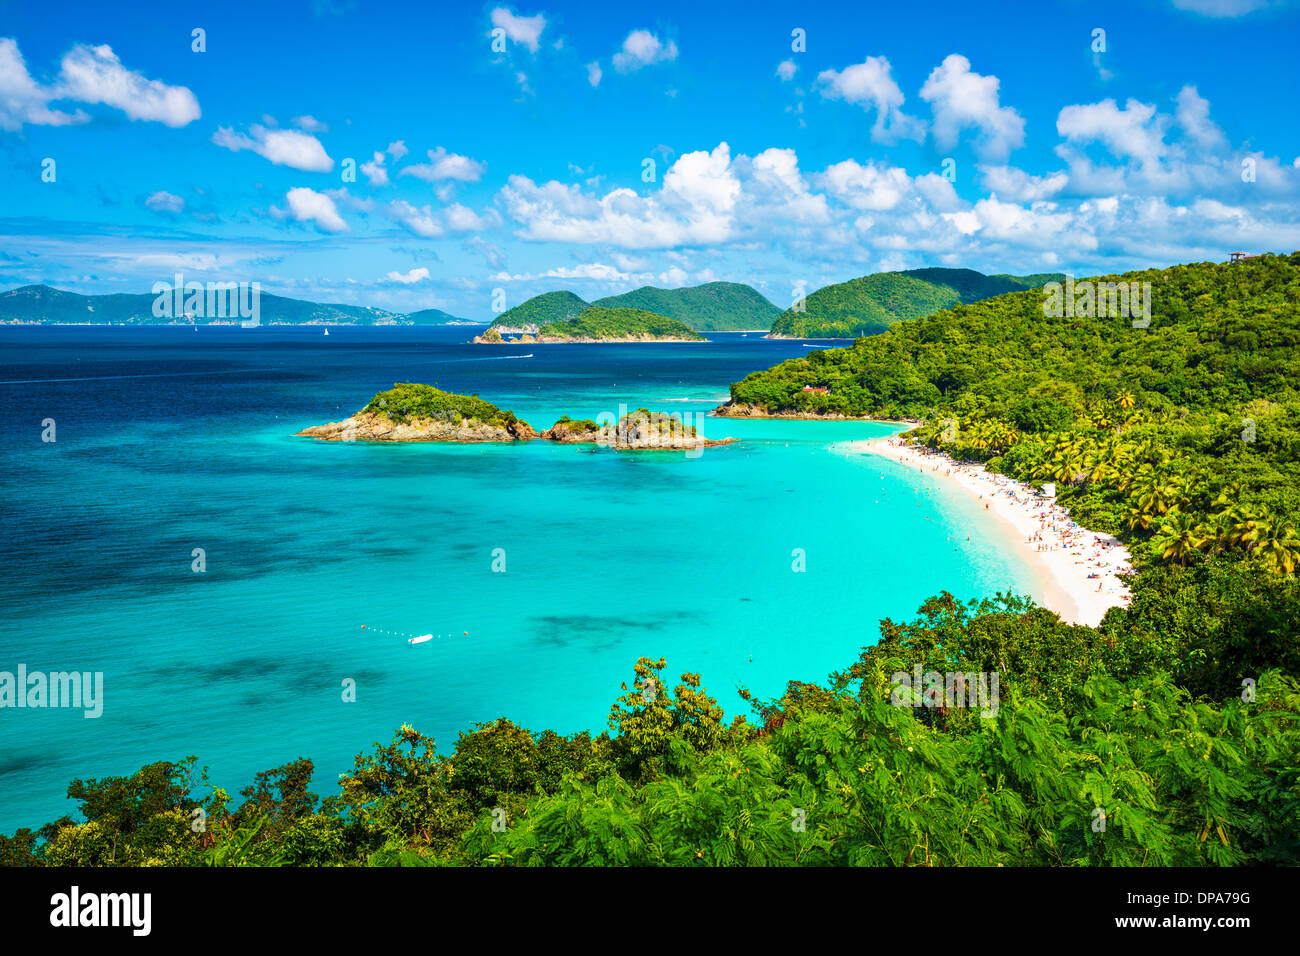 Trunk Bay, San Giovanni, Stati Uniti Isole Vergini. Foto Stock